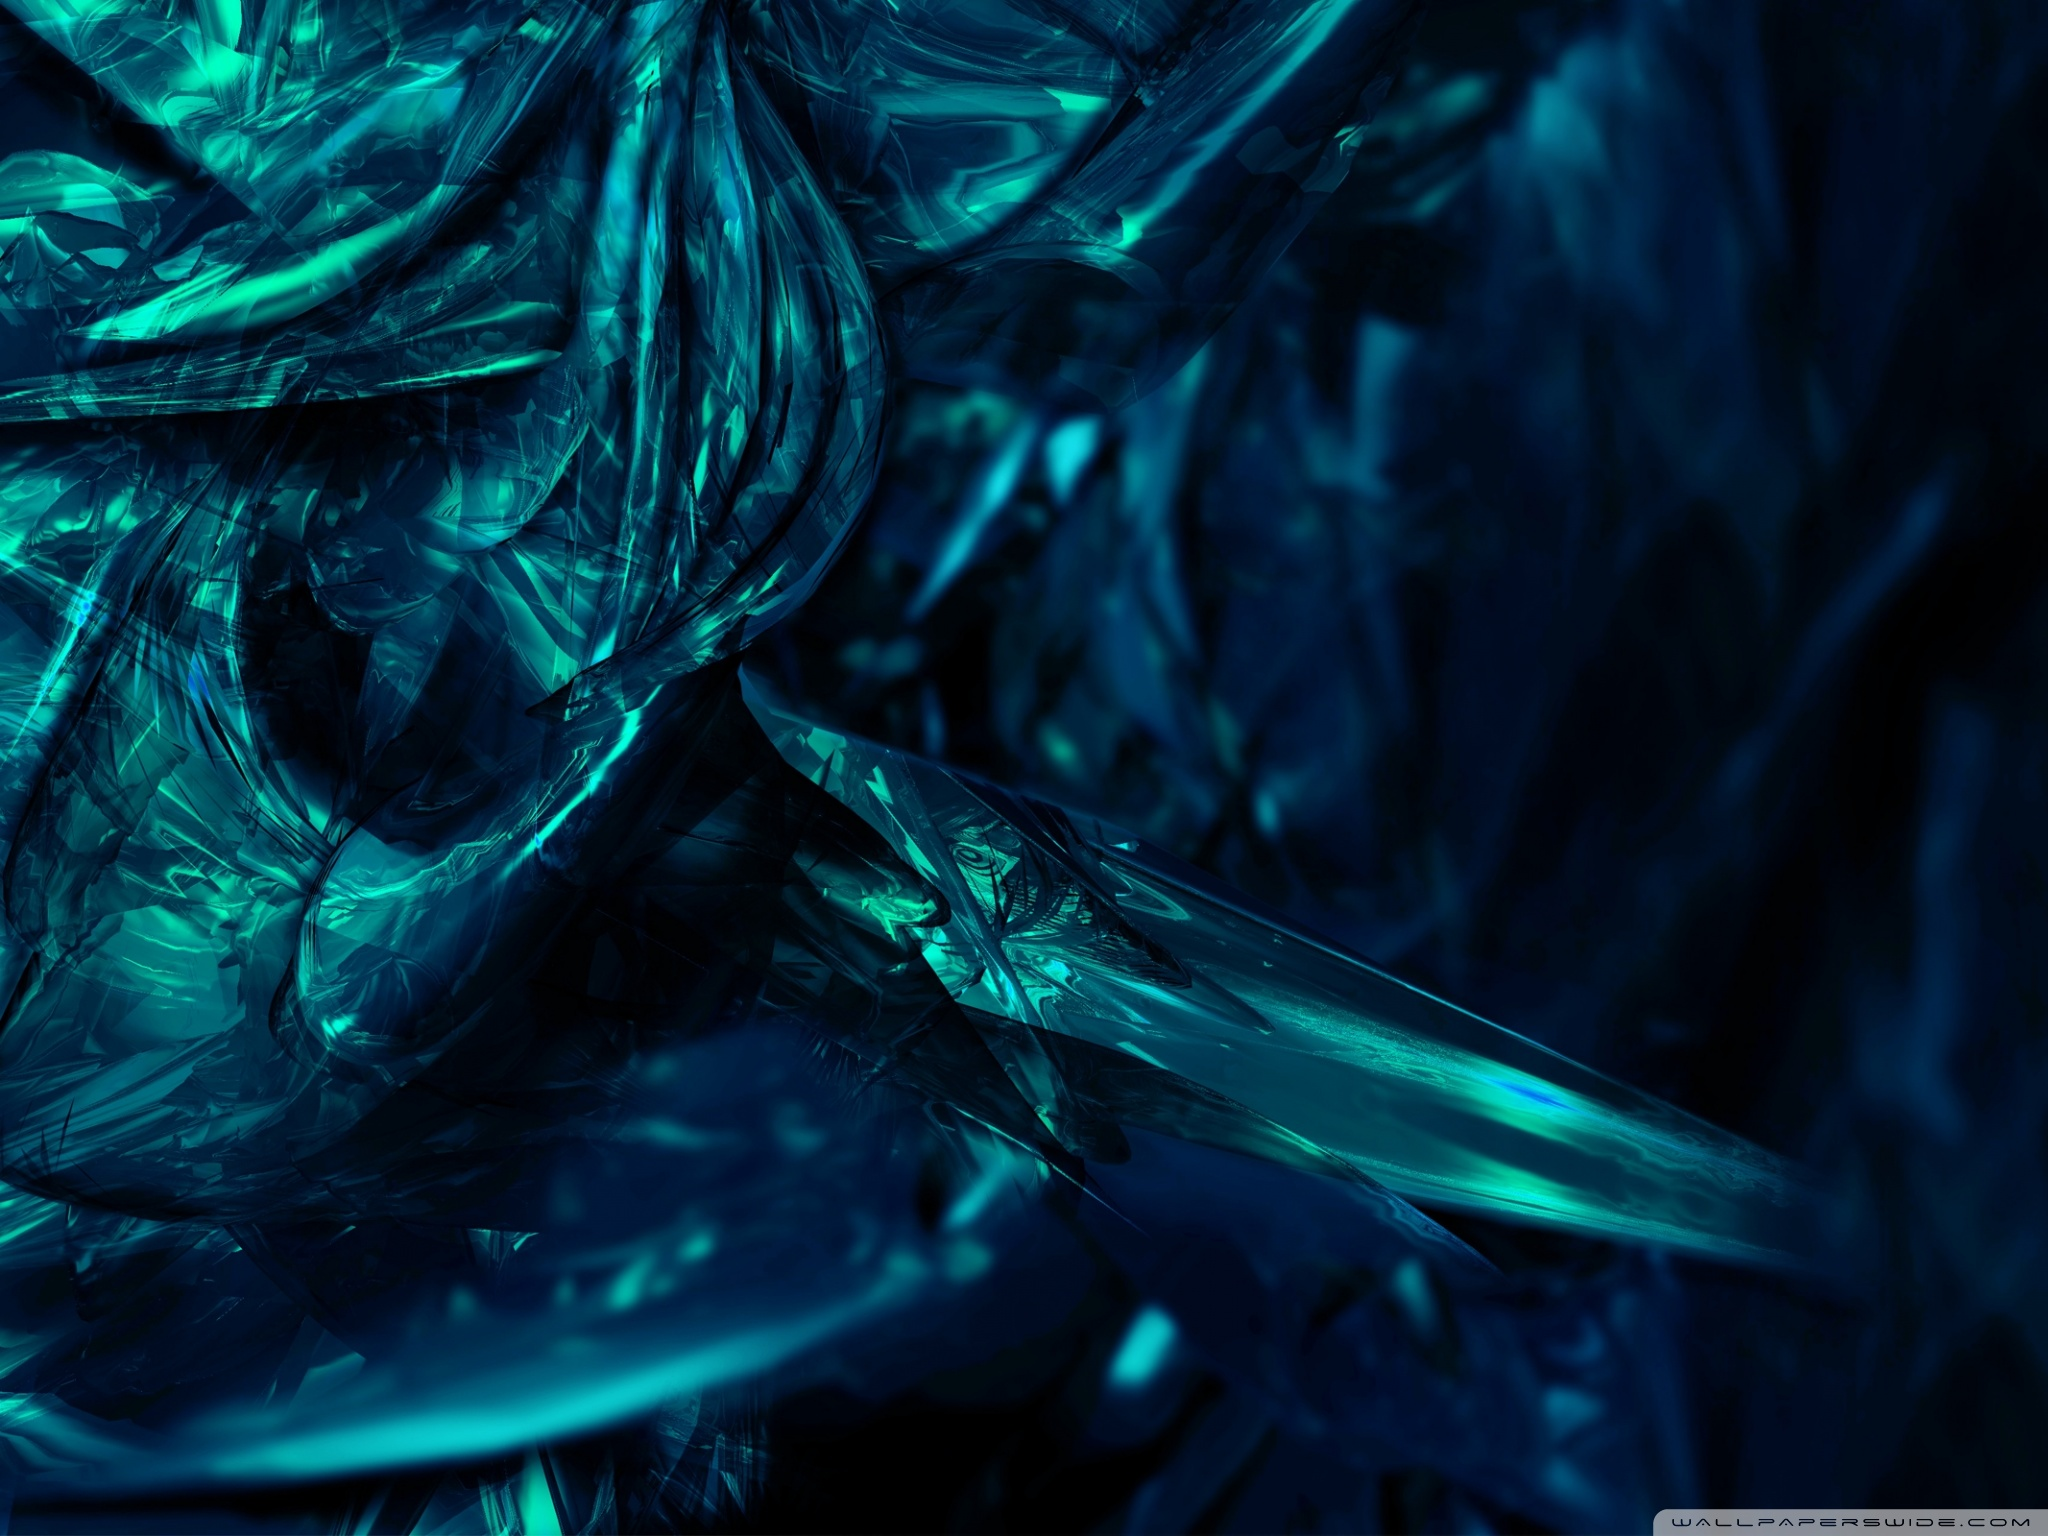 Abstract Turquoise Background HD desktop wallpaper : High